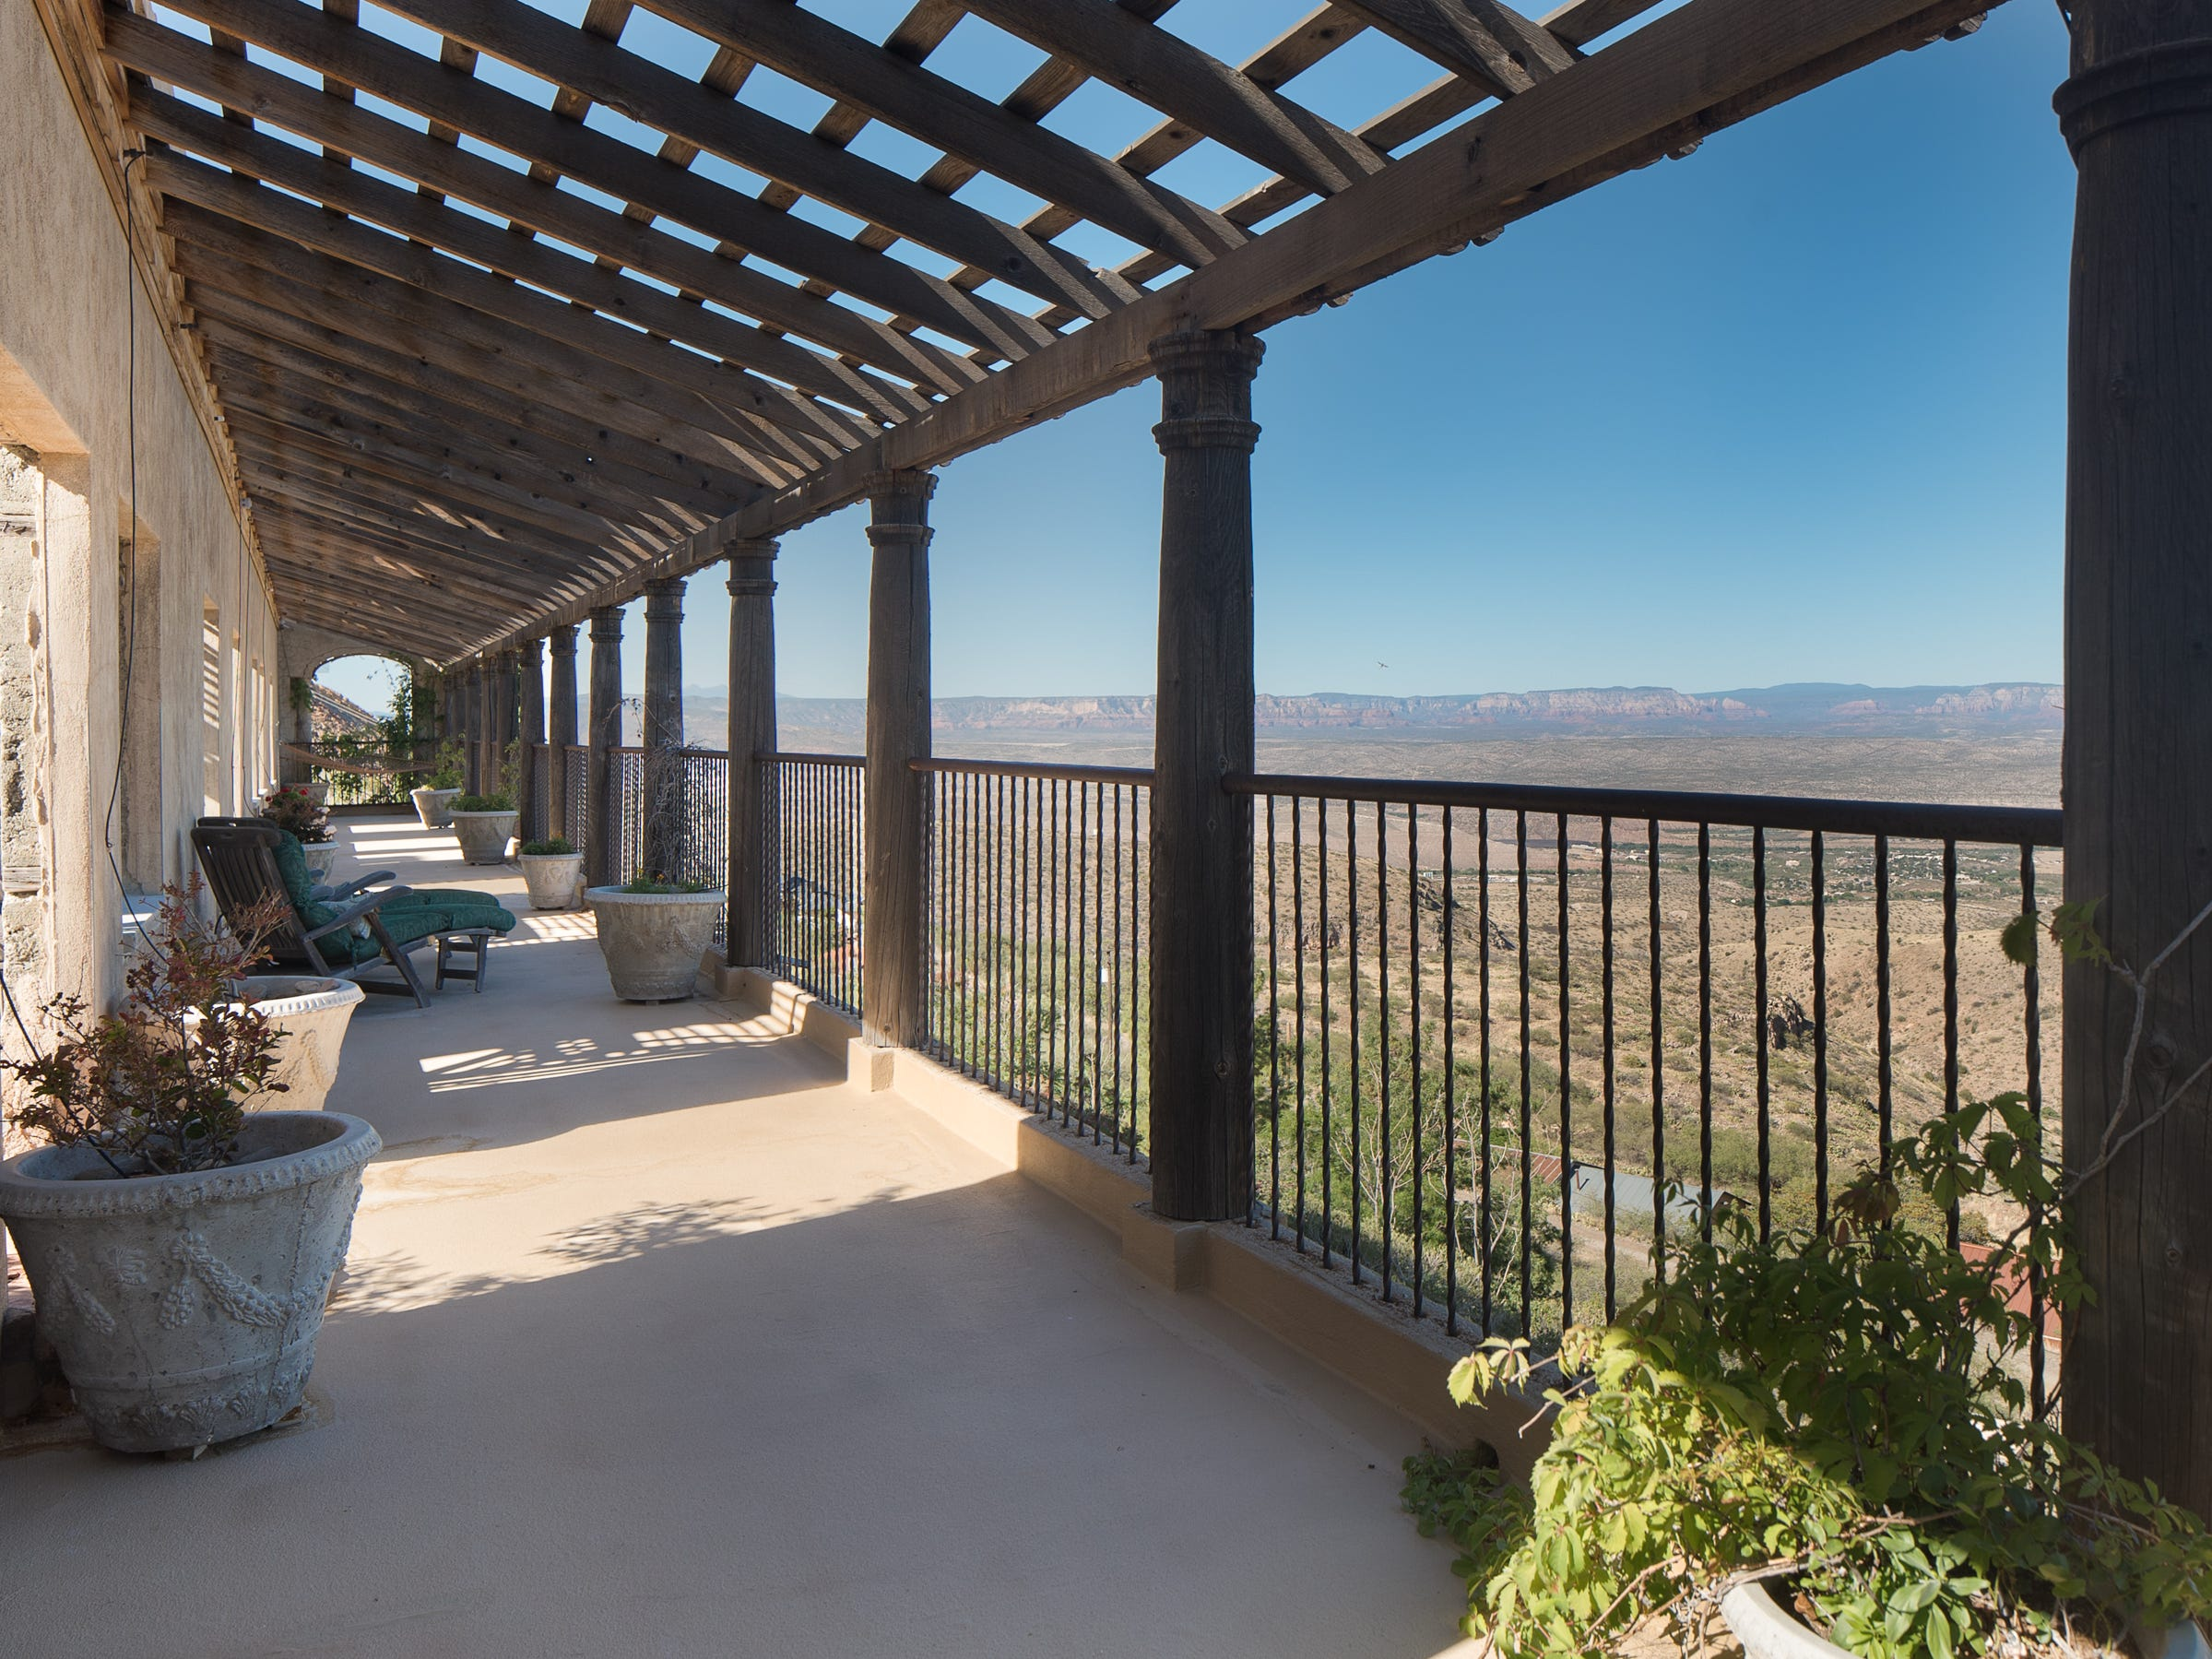 Verde Valley views surround the 100-year-old former Little Daisy Hotel in Jerome, which was later turned into a single-family home and is now on the market.